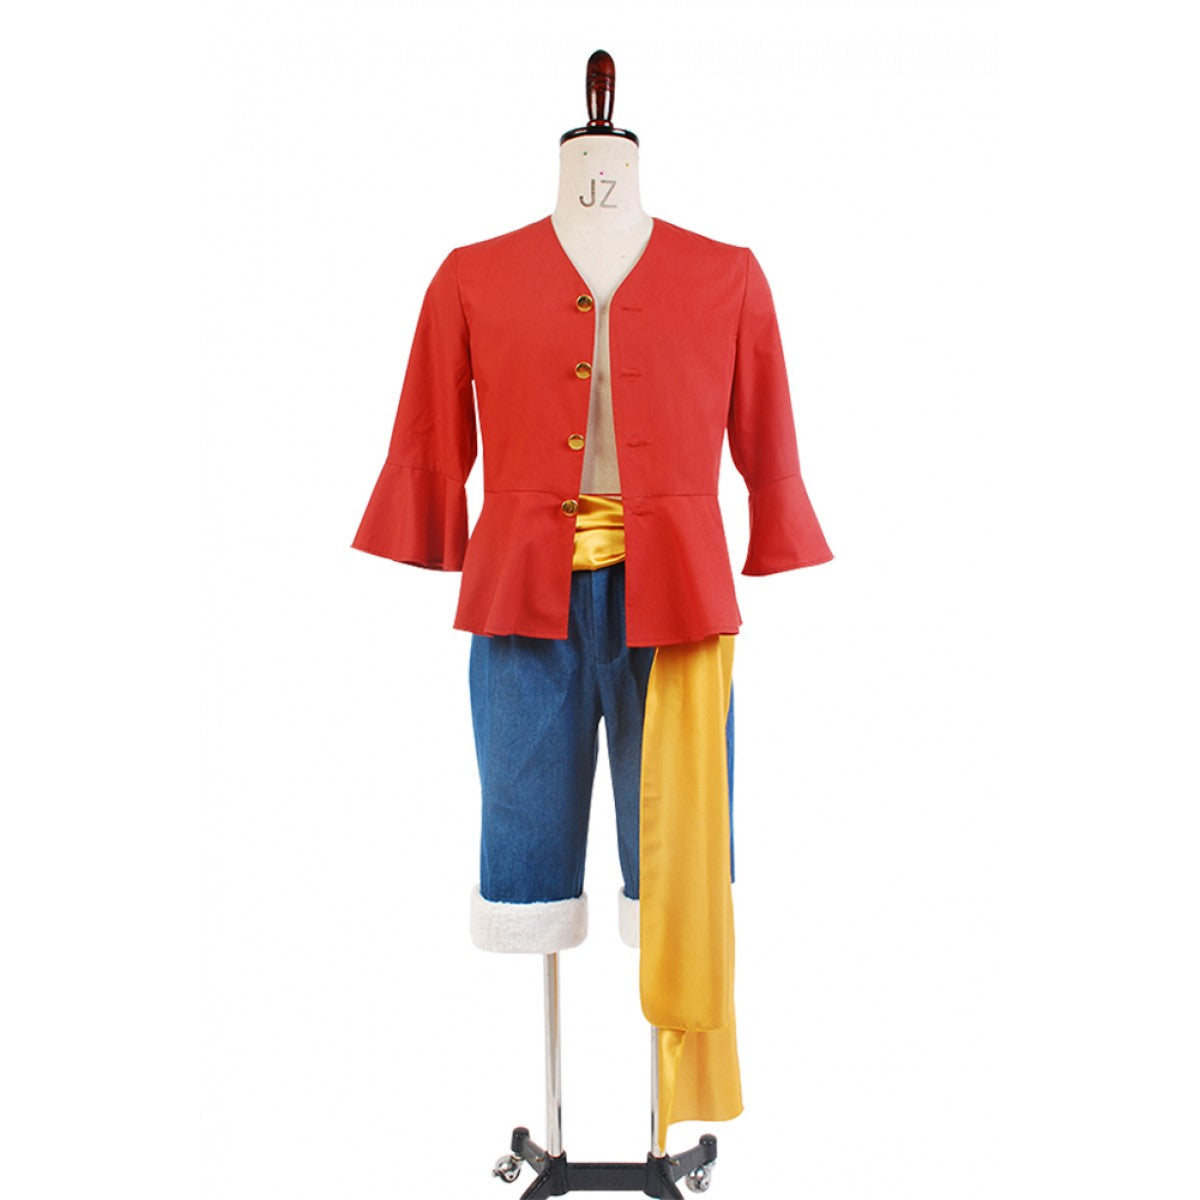 Monkey D Luffy Straw Hat Cosplay Costume for sale